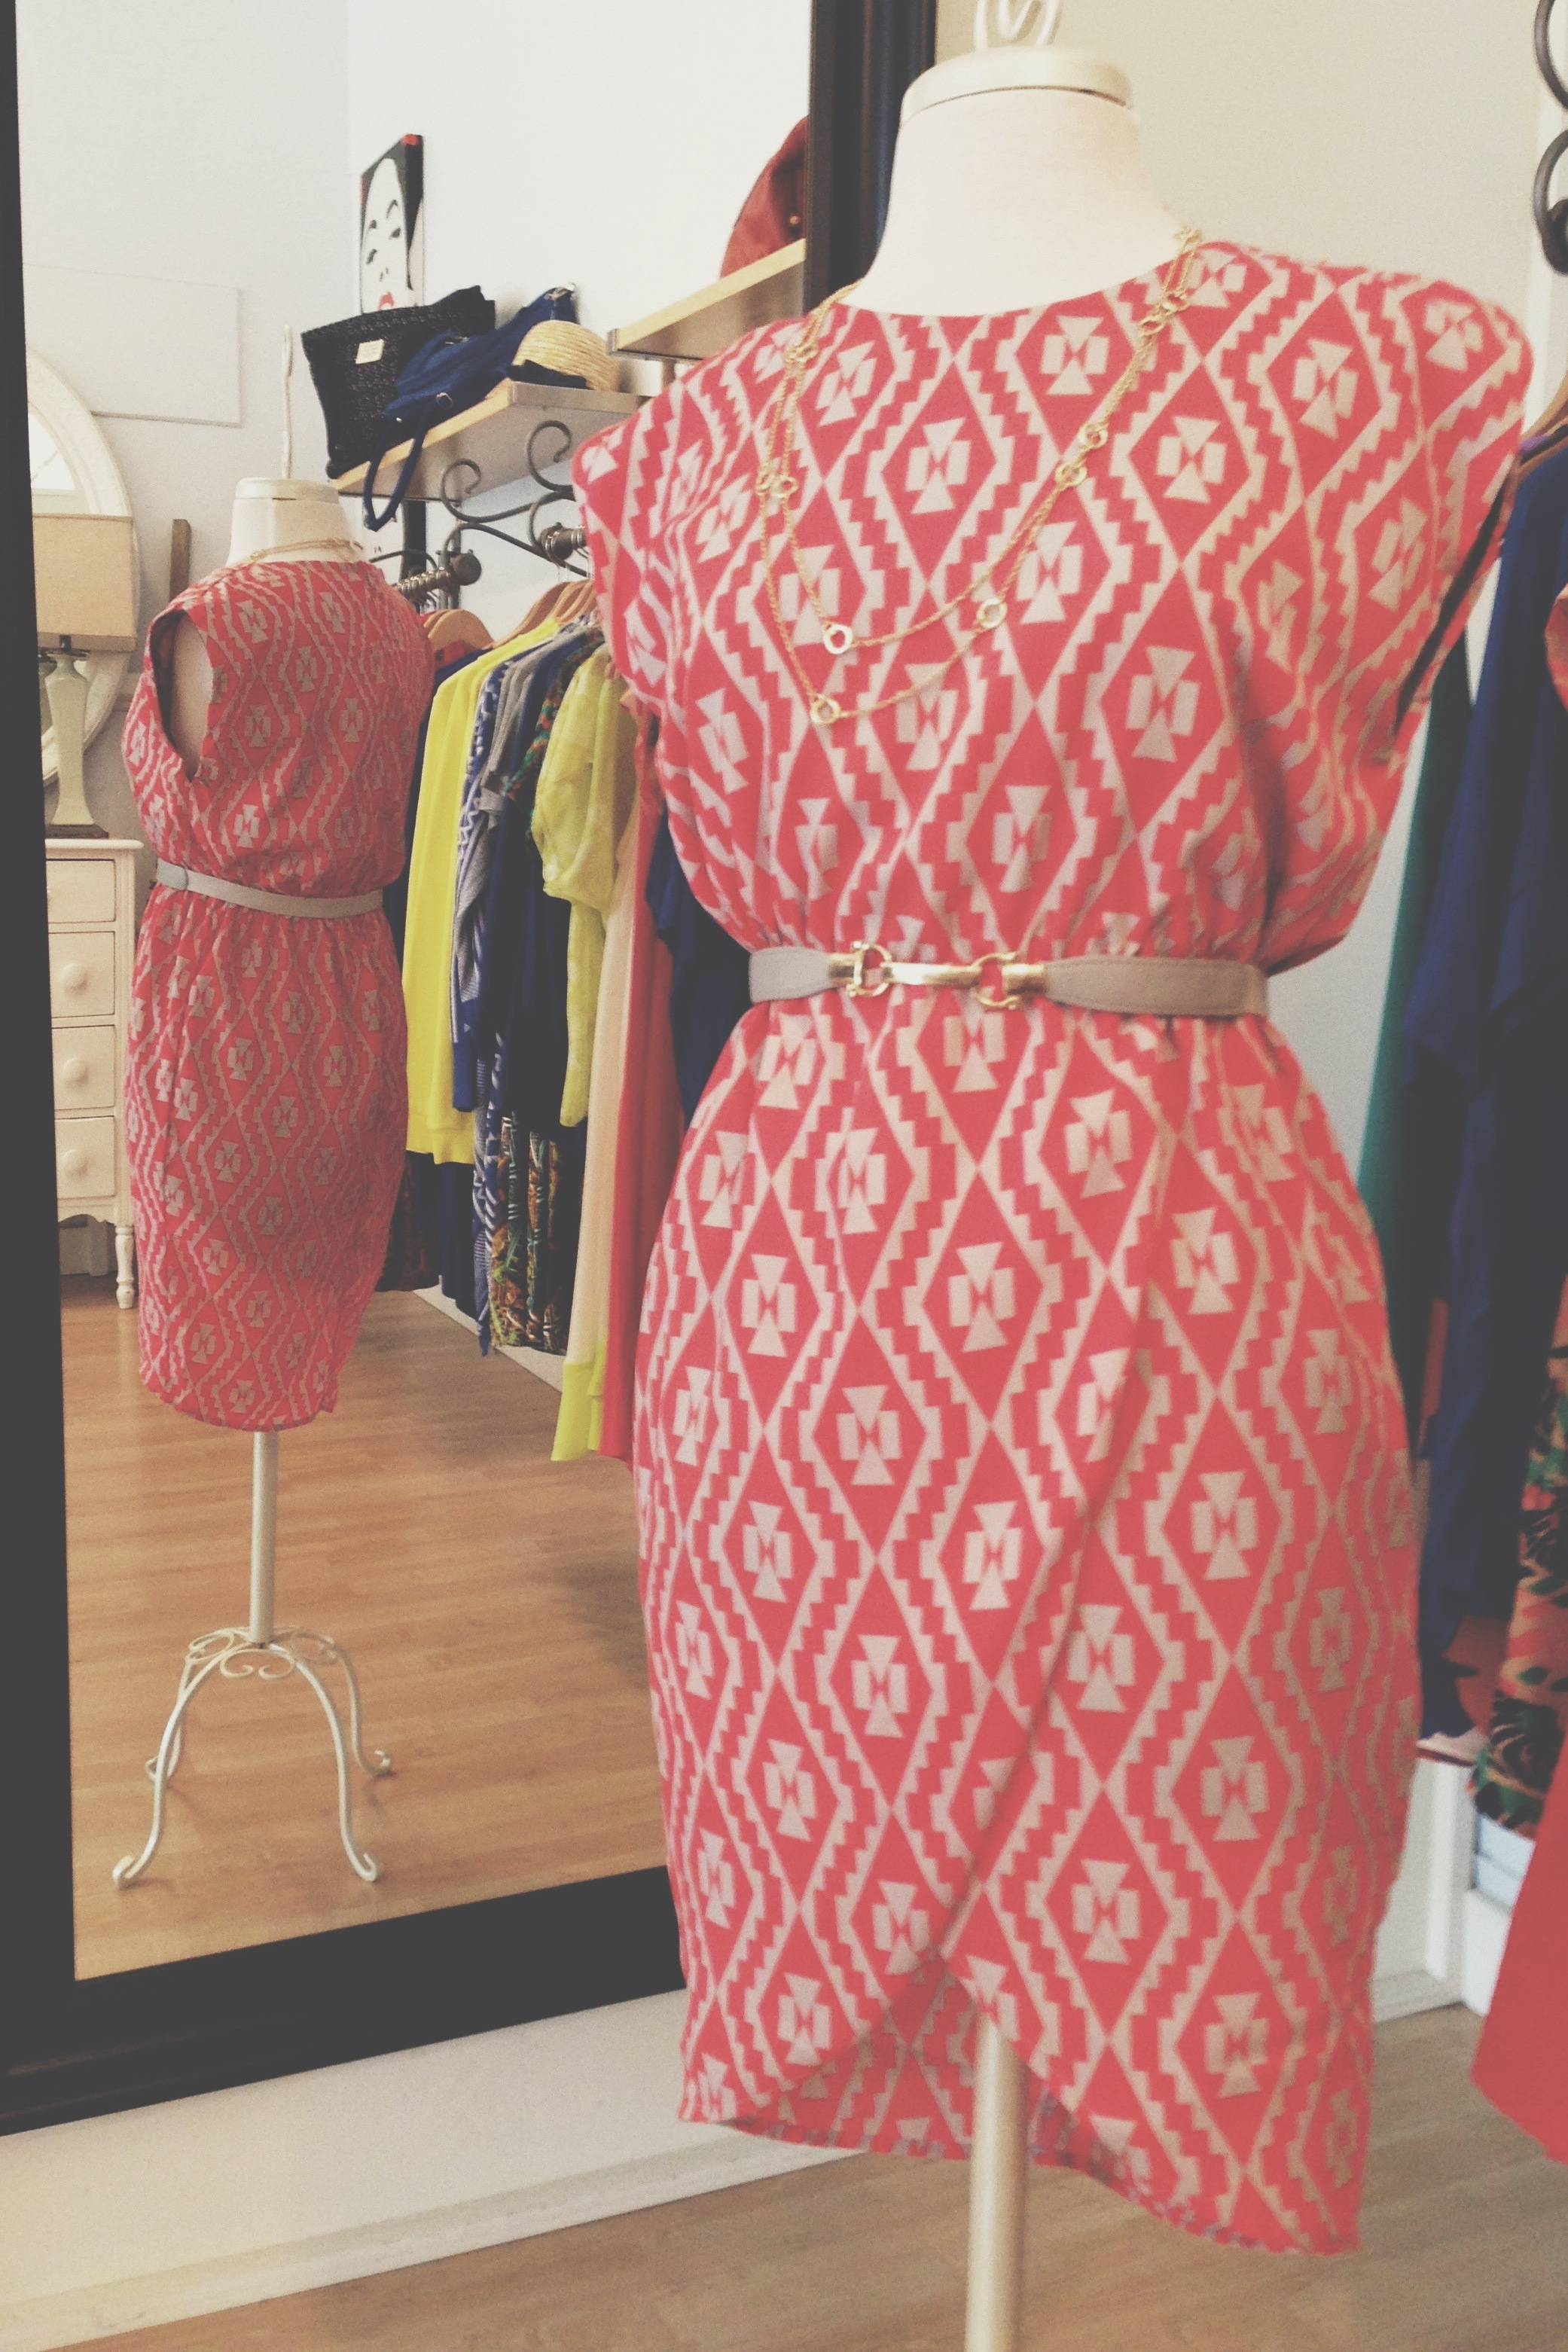 Red + Tan print dress belted with a necklace.